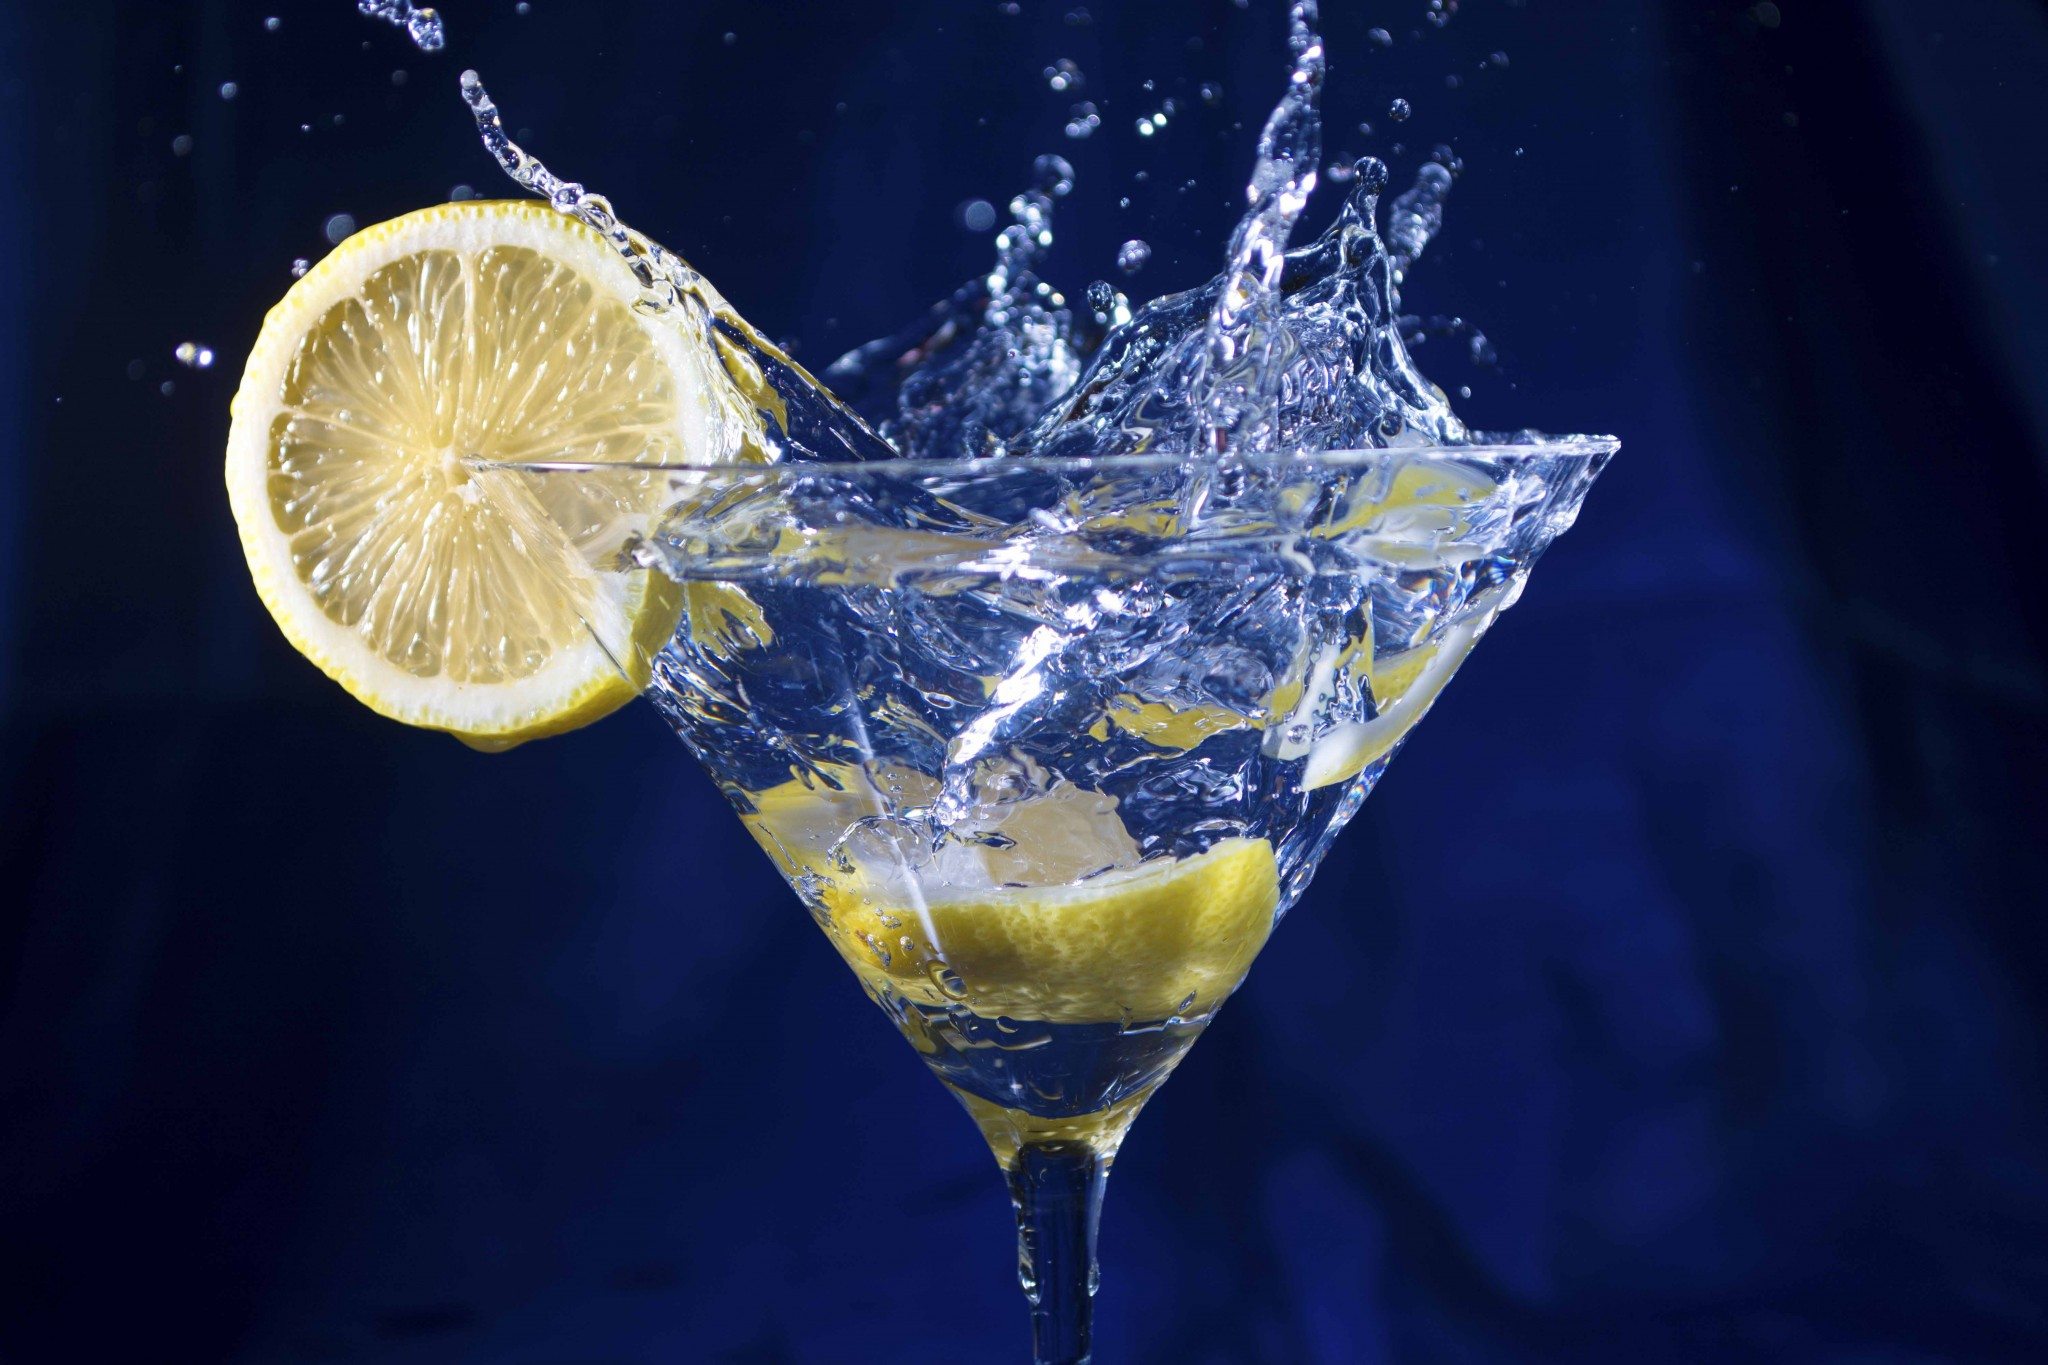 Lemon Drop Stop Action Martini Glass Blue Yellow Allan Sacramento State Fair Winners creative